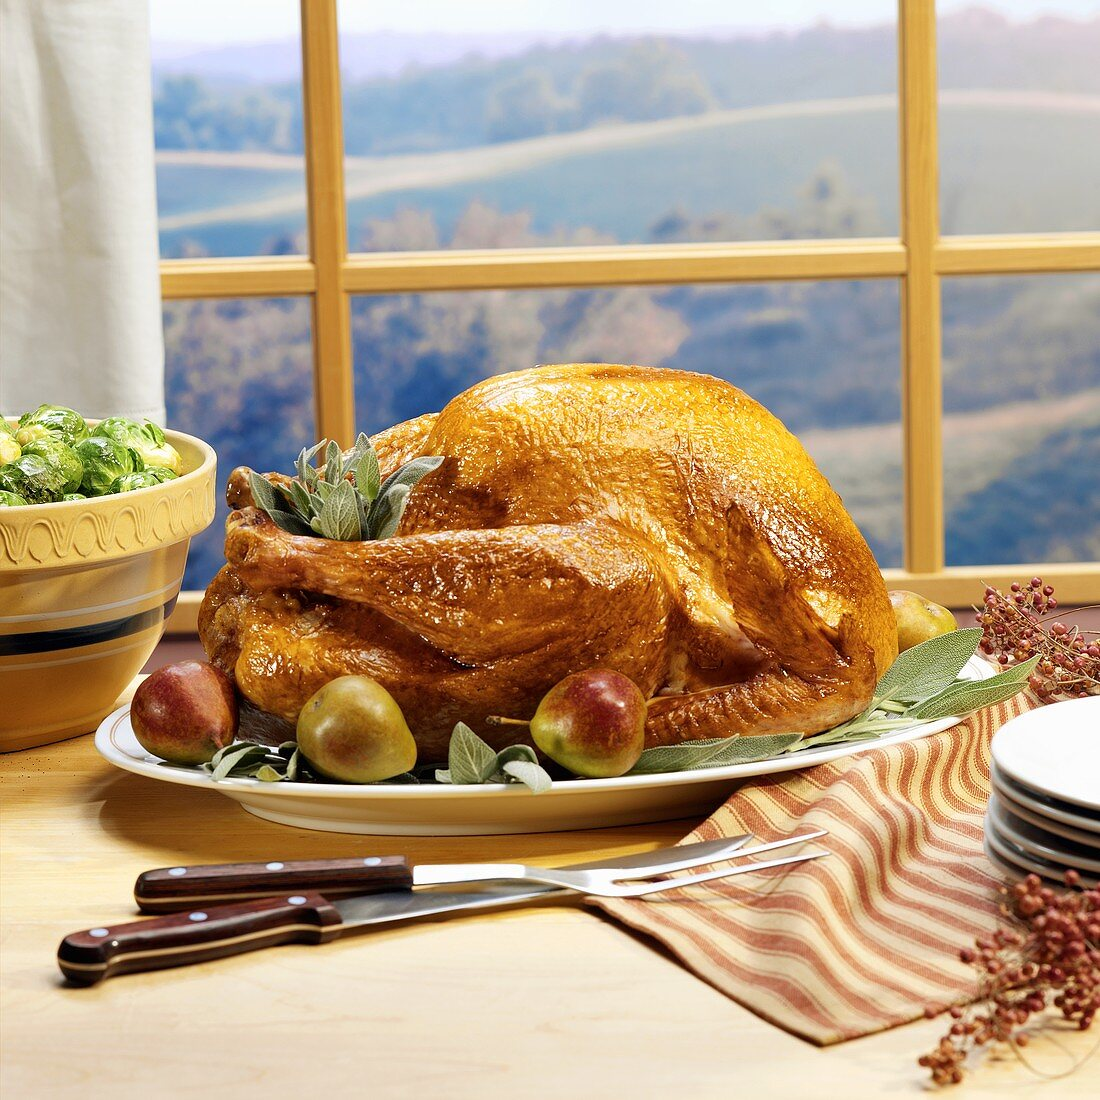 Roast turkey with pears and sage in front of a window